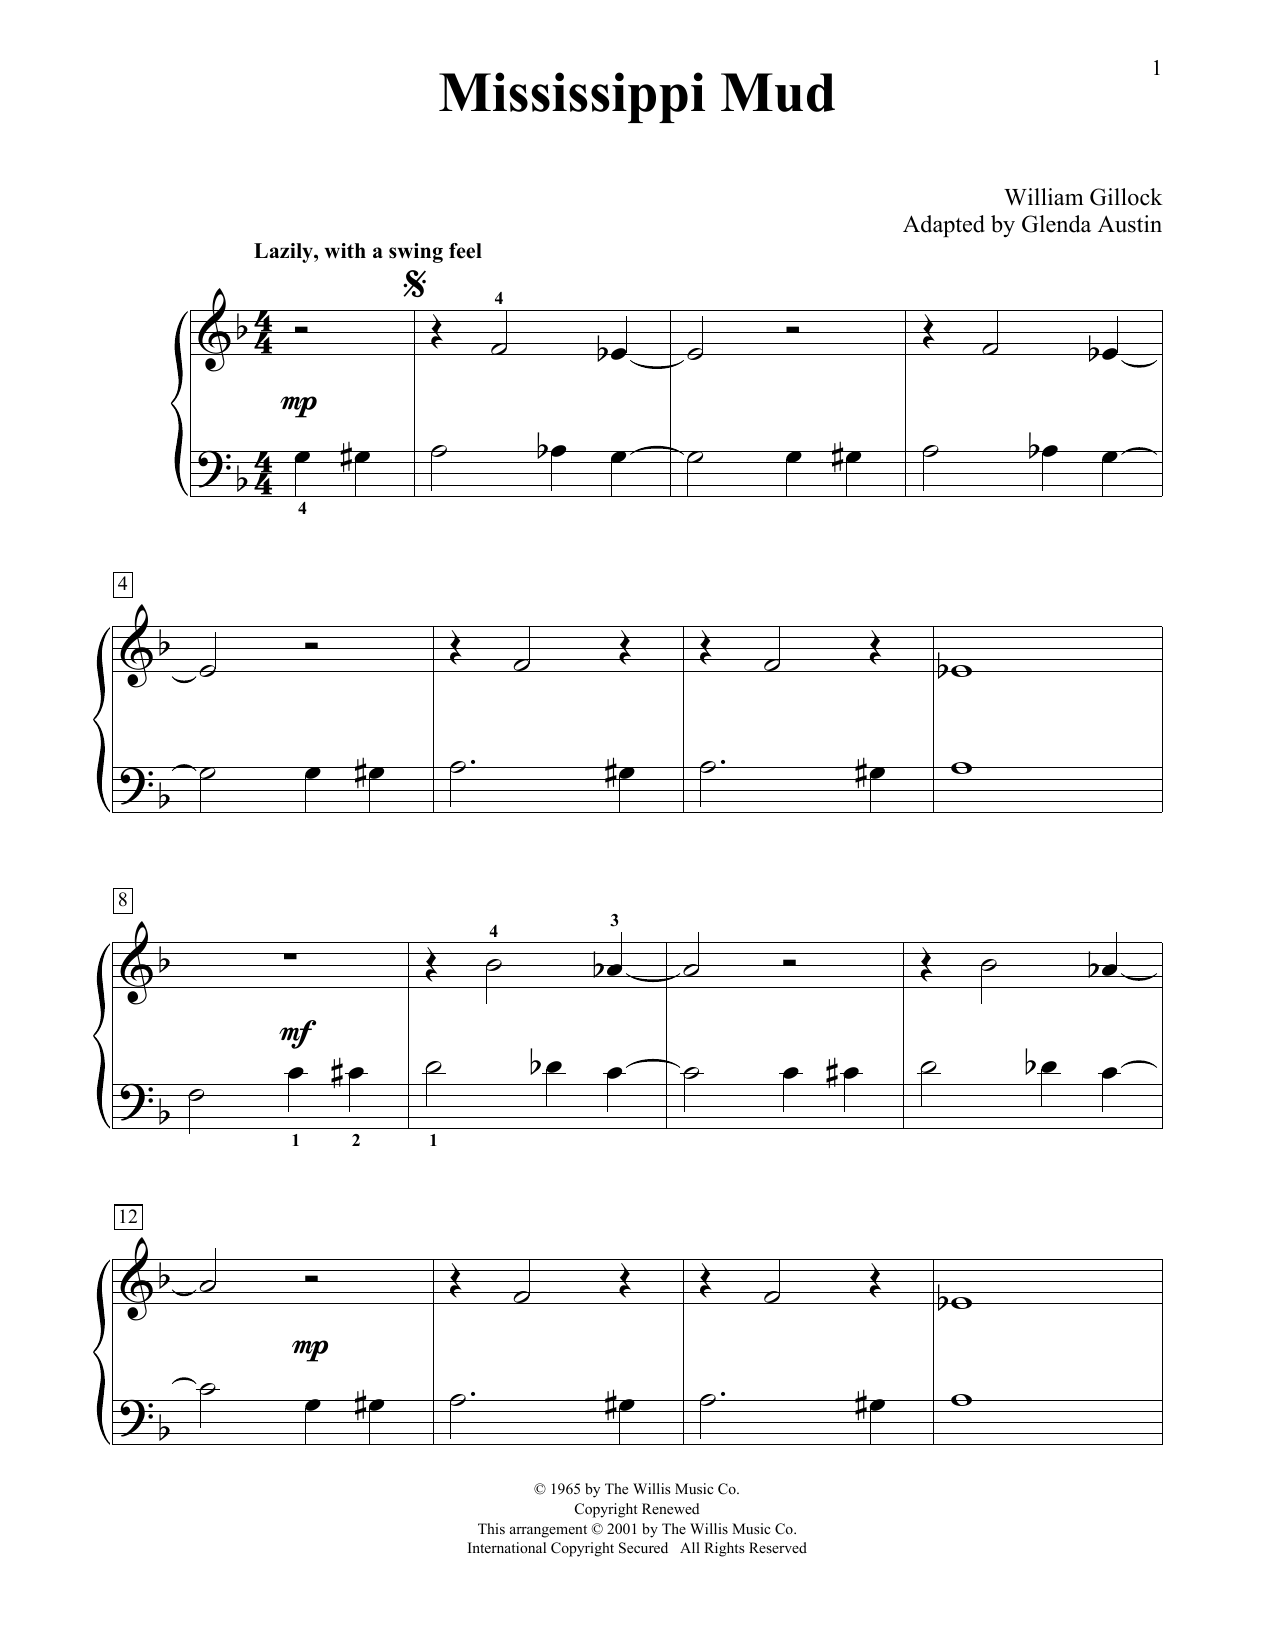 William Gillock Mississippi Mud (Simplified) (adapted by Glenda Austin) sheet music notes printable PDF score